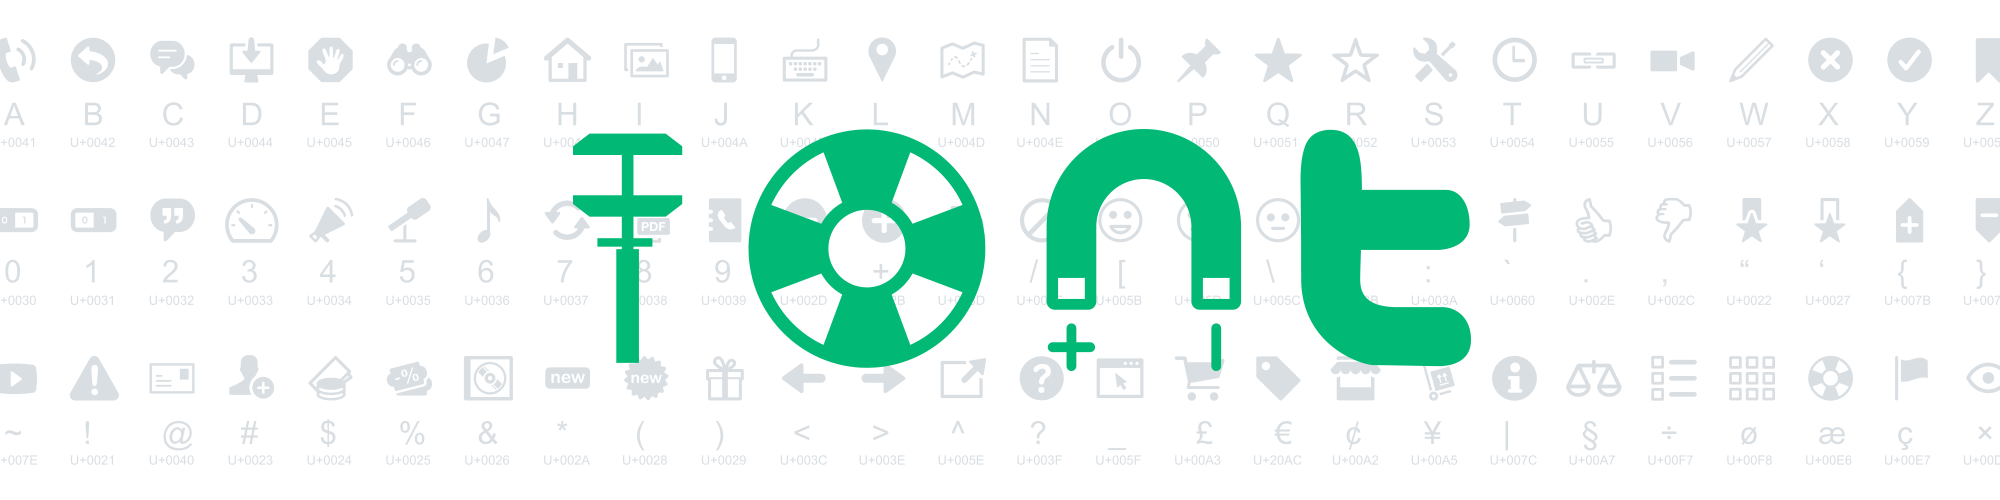 Create your own icon font and how to use it on websites proscons icons by picons buycottarizona Choice Image